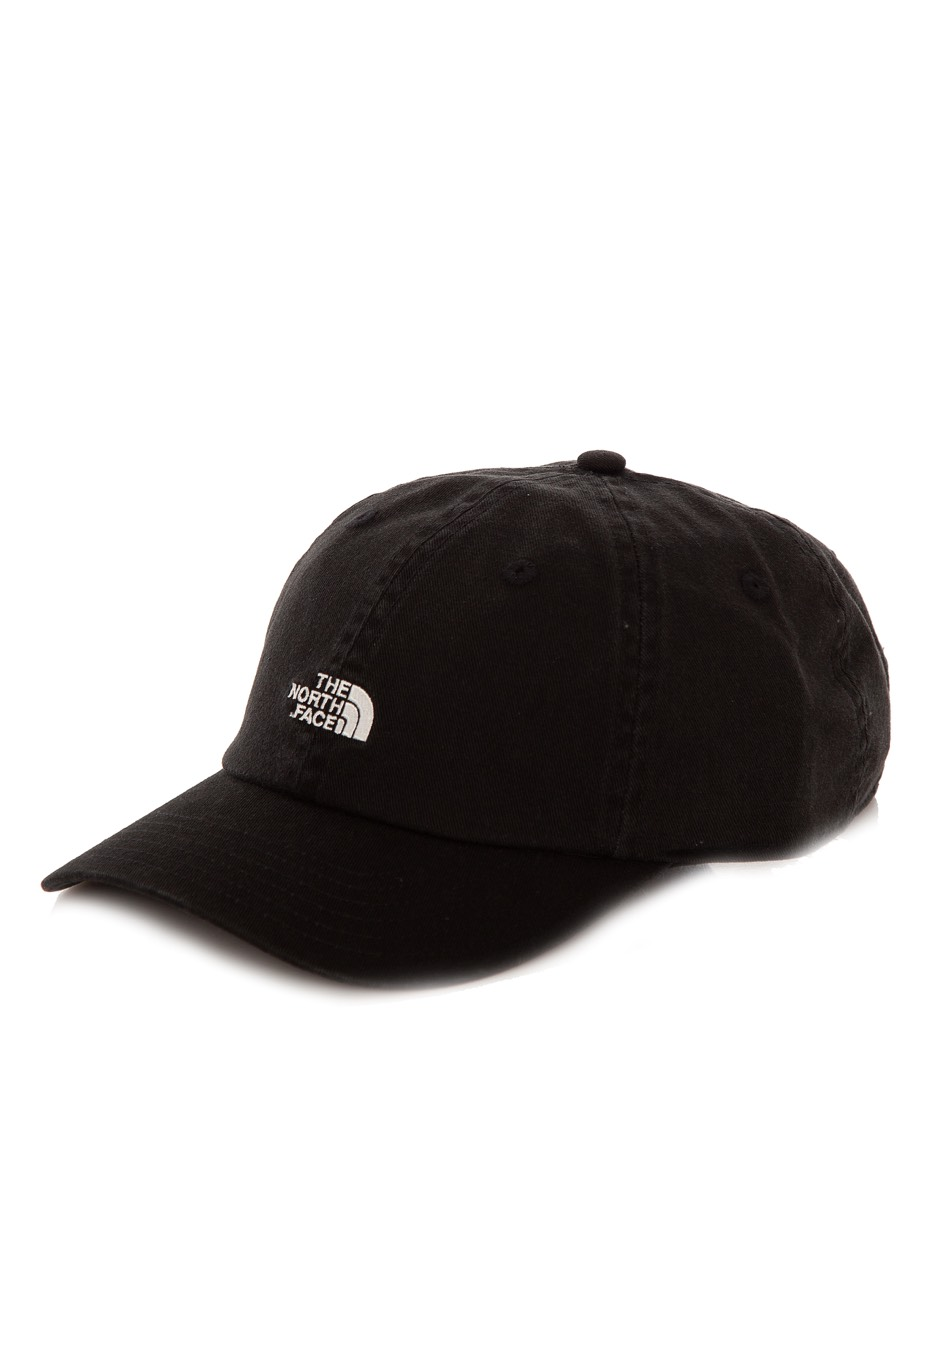 5ef04af5645 The North Face - Washed Norm TNF Black Wash - Cap - Streetwear Shop -  Impericon.com AU